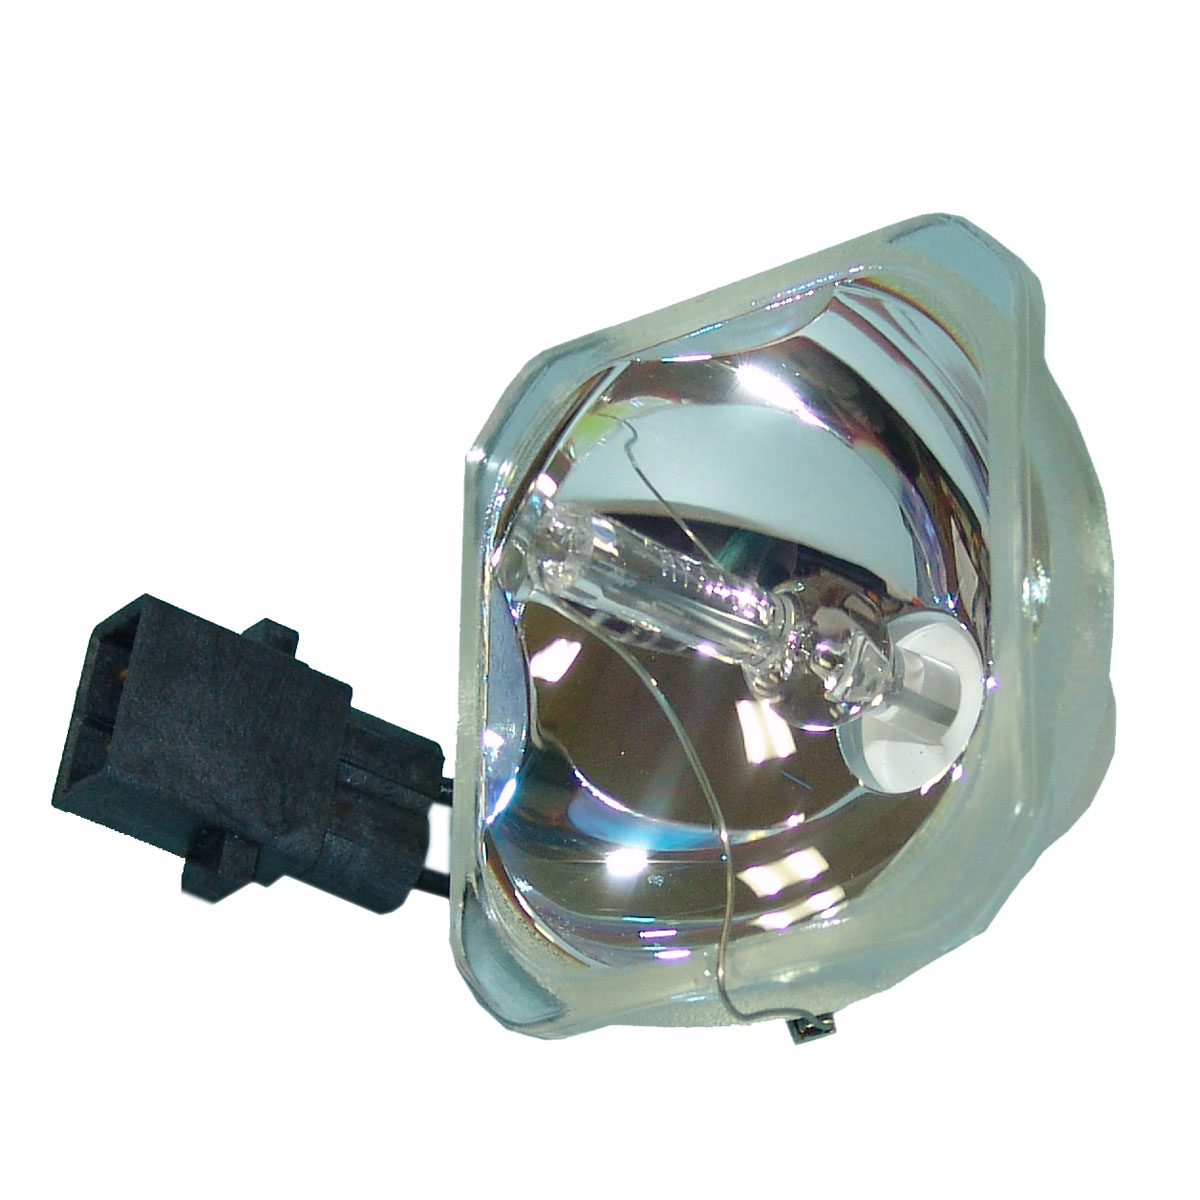 Lutema Economy Bulb for Epson PowerLite Presenter Projector (Lamp Only) - image 5 de 5